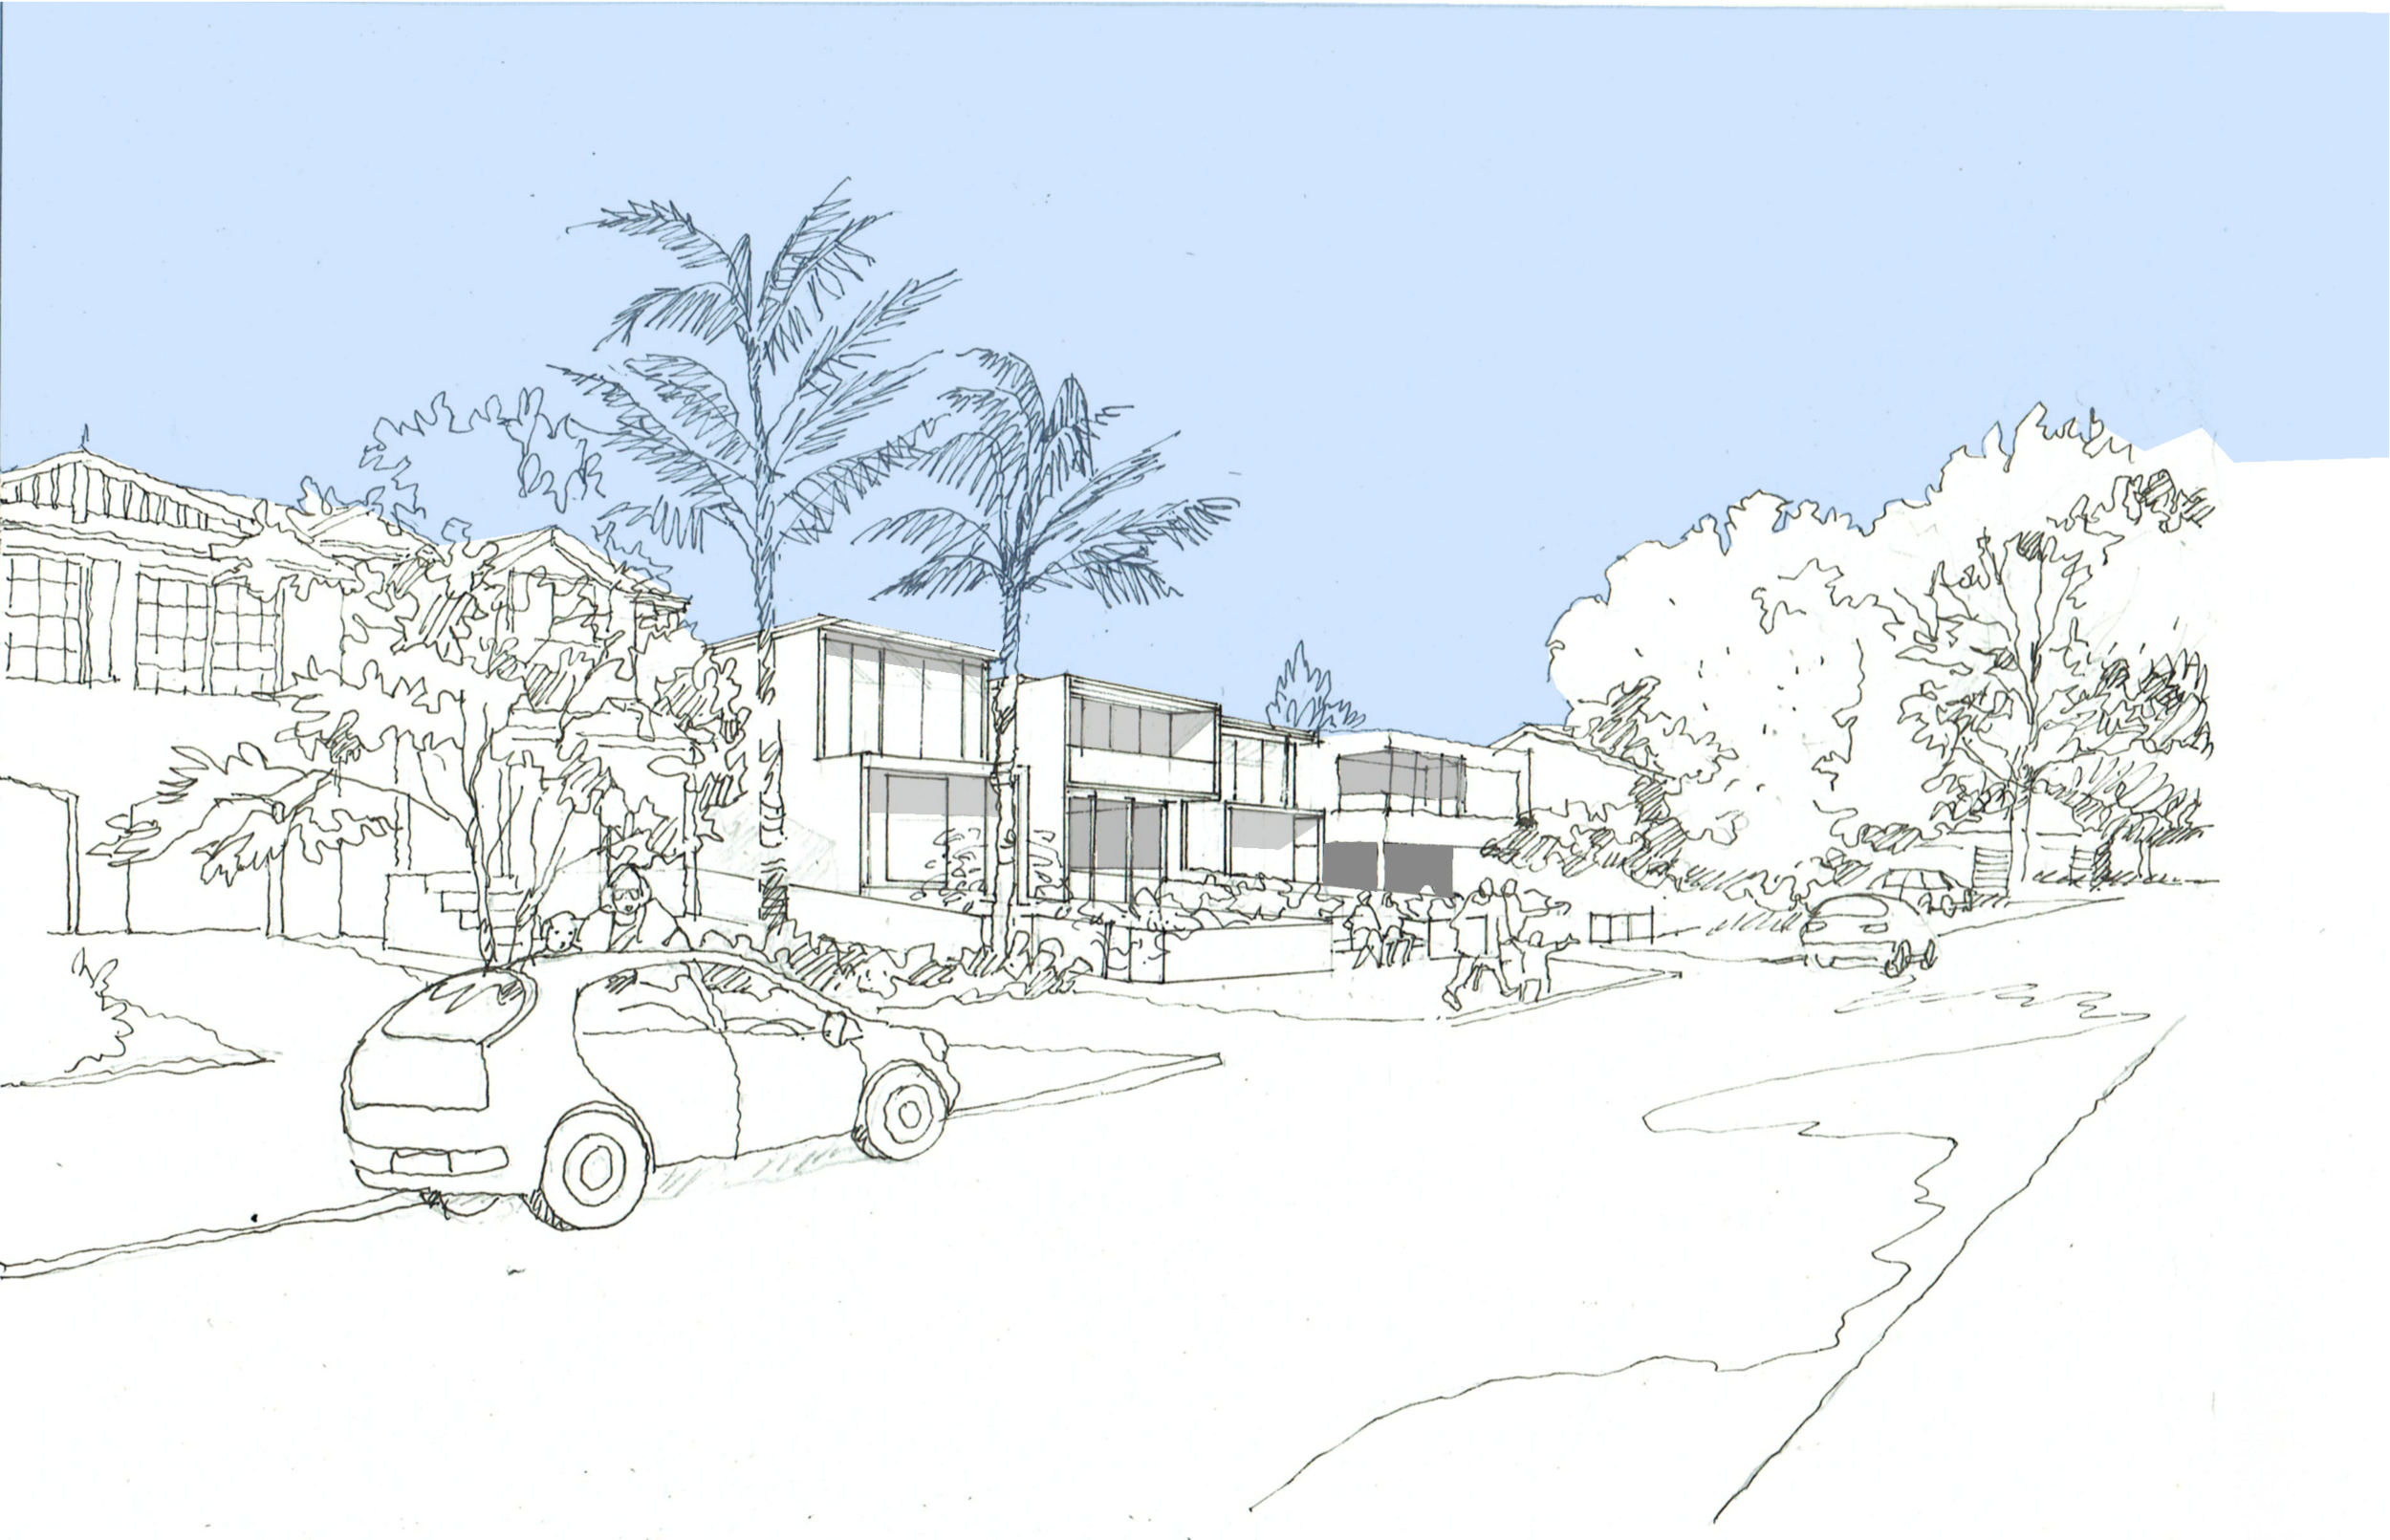 Context Street View of 4 dwelling courtyard development in Marsfield